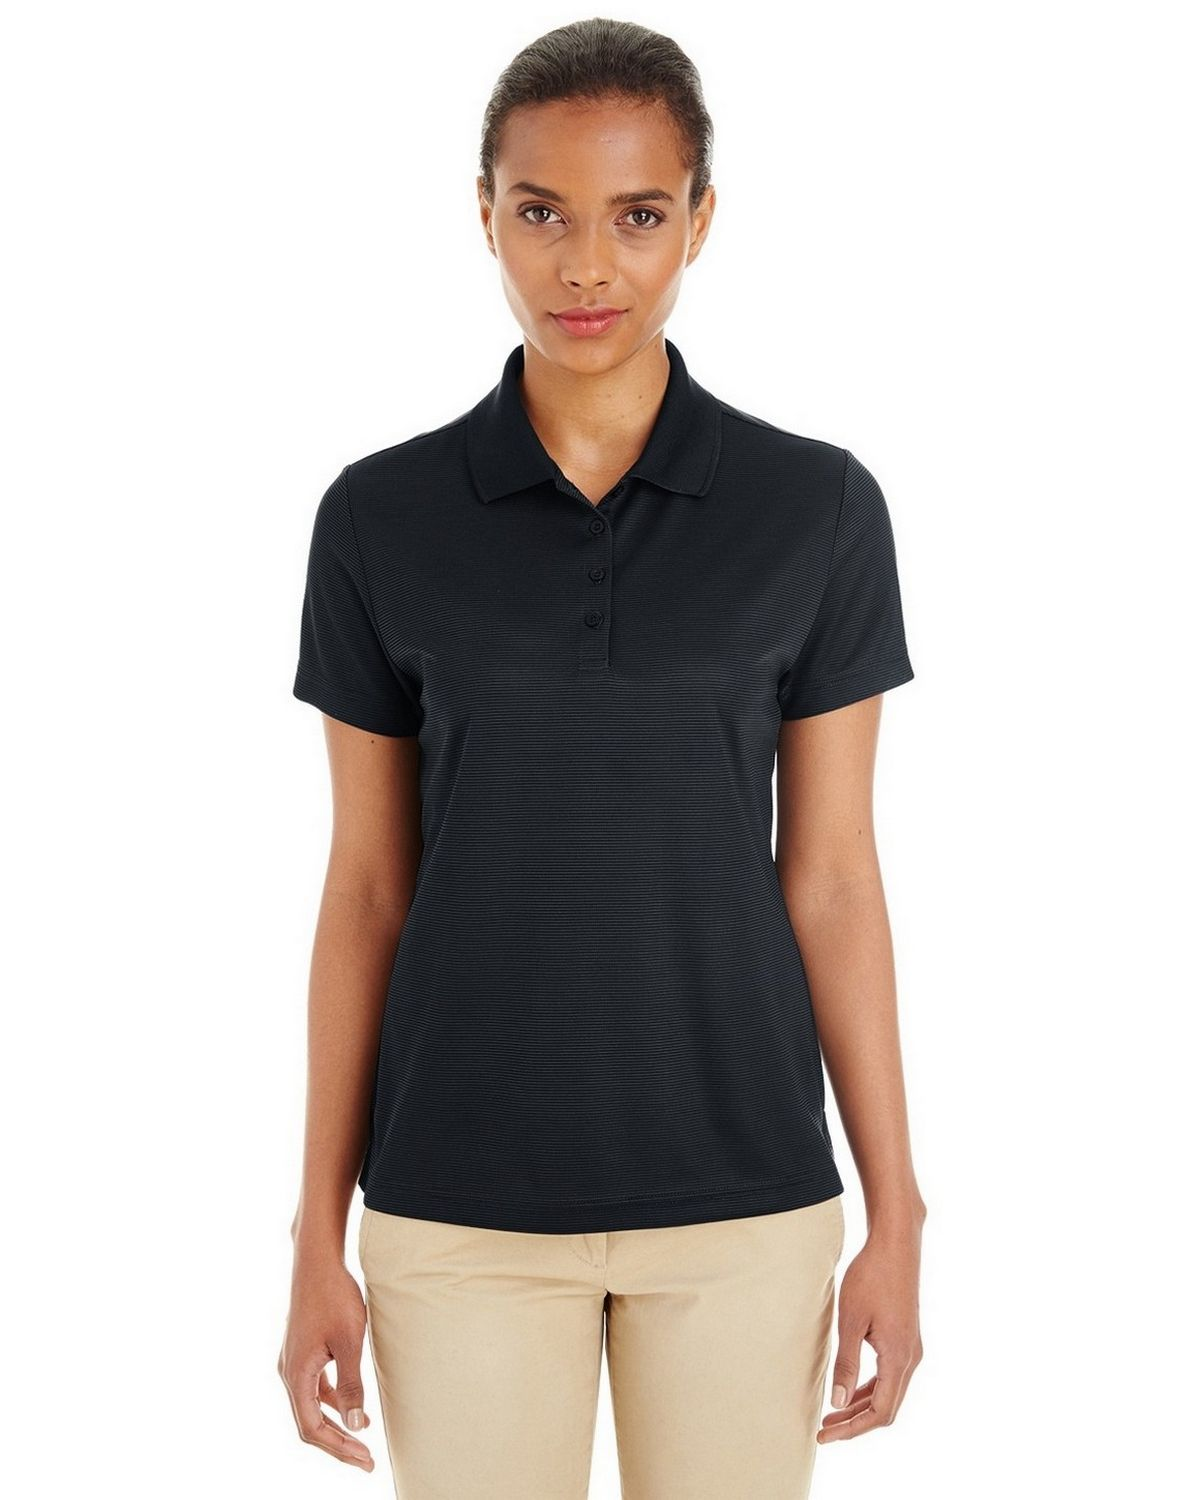 Core365 CE102W Ladies Express Microstripe Performance Piqué Polo